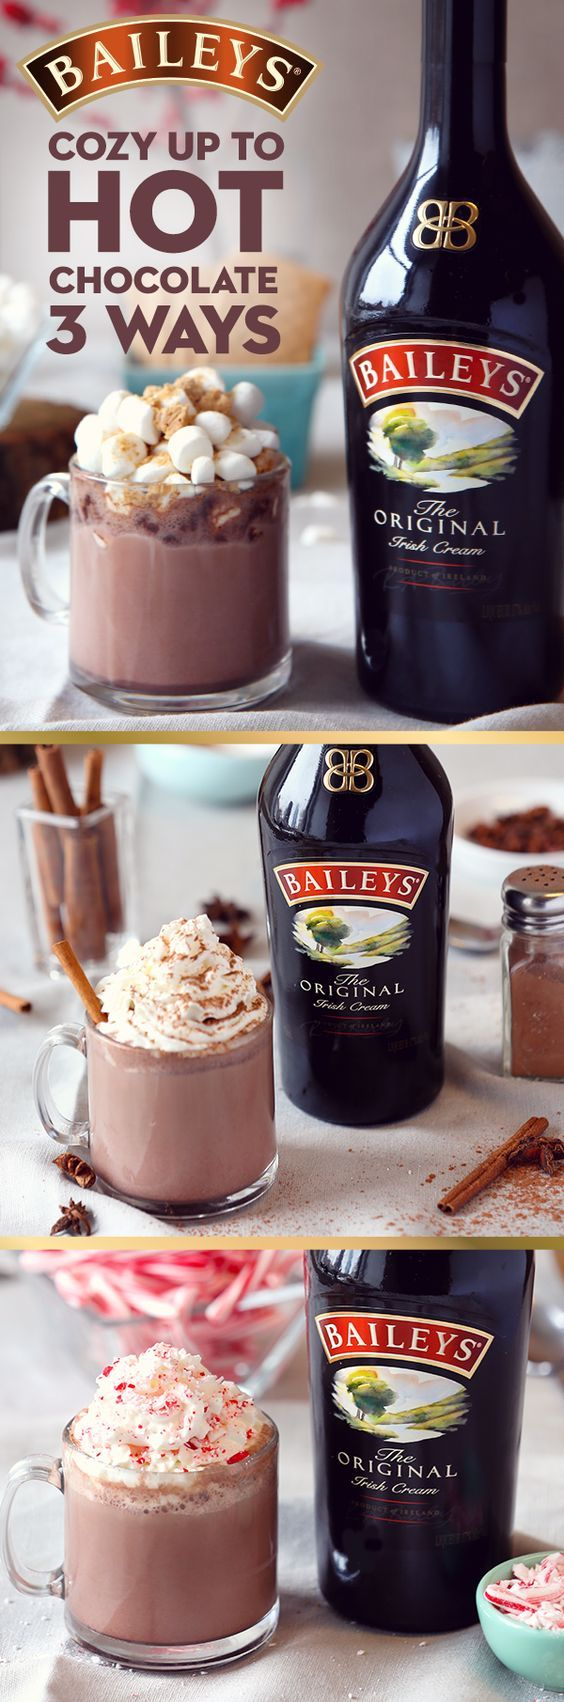 Cozy up on the couch with a warm homemade dessert drink. These 3 easy twists on the classic Baileys and hot chocolate recipe are the perfect treat. Whether you like to make your cocoa in a crockpot or stovetop, these generous toppings—pumpkin spice with a hint of hazelnut spread, peppermint with a candy cane garnish or s'mores topped with marshmallows and graham crackers—pick your favorite and just add 1.5oz Baileys Irish Cream Liqueur per serving.